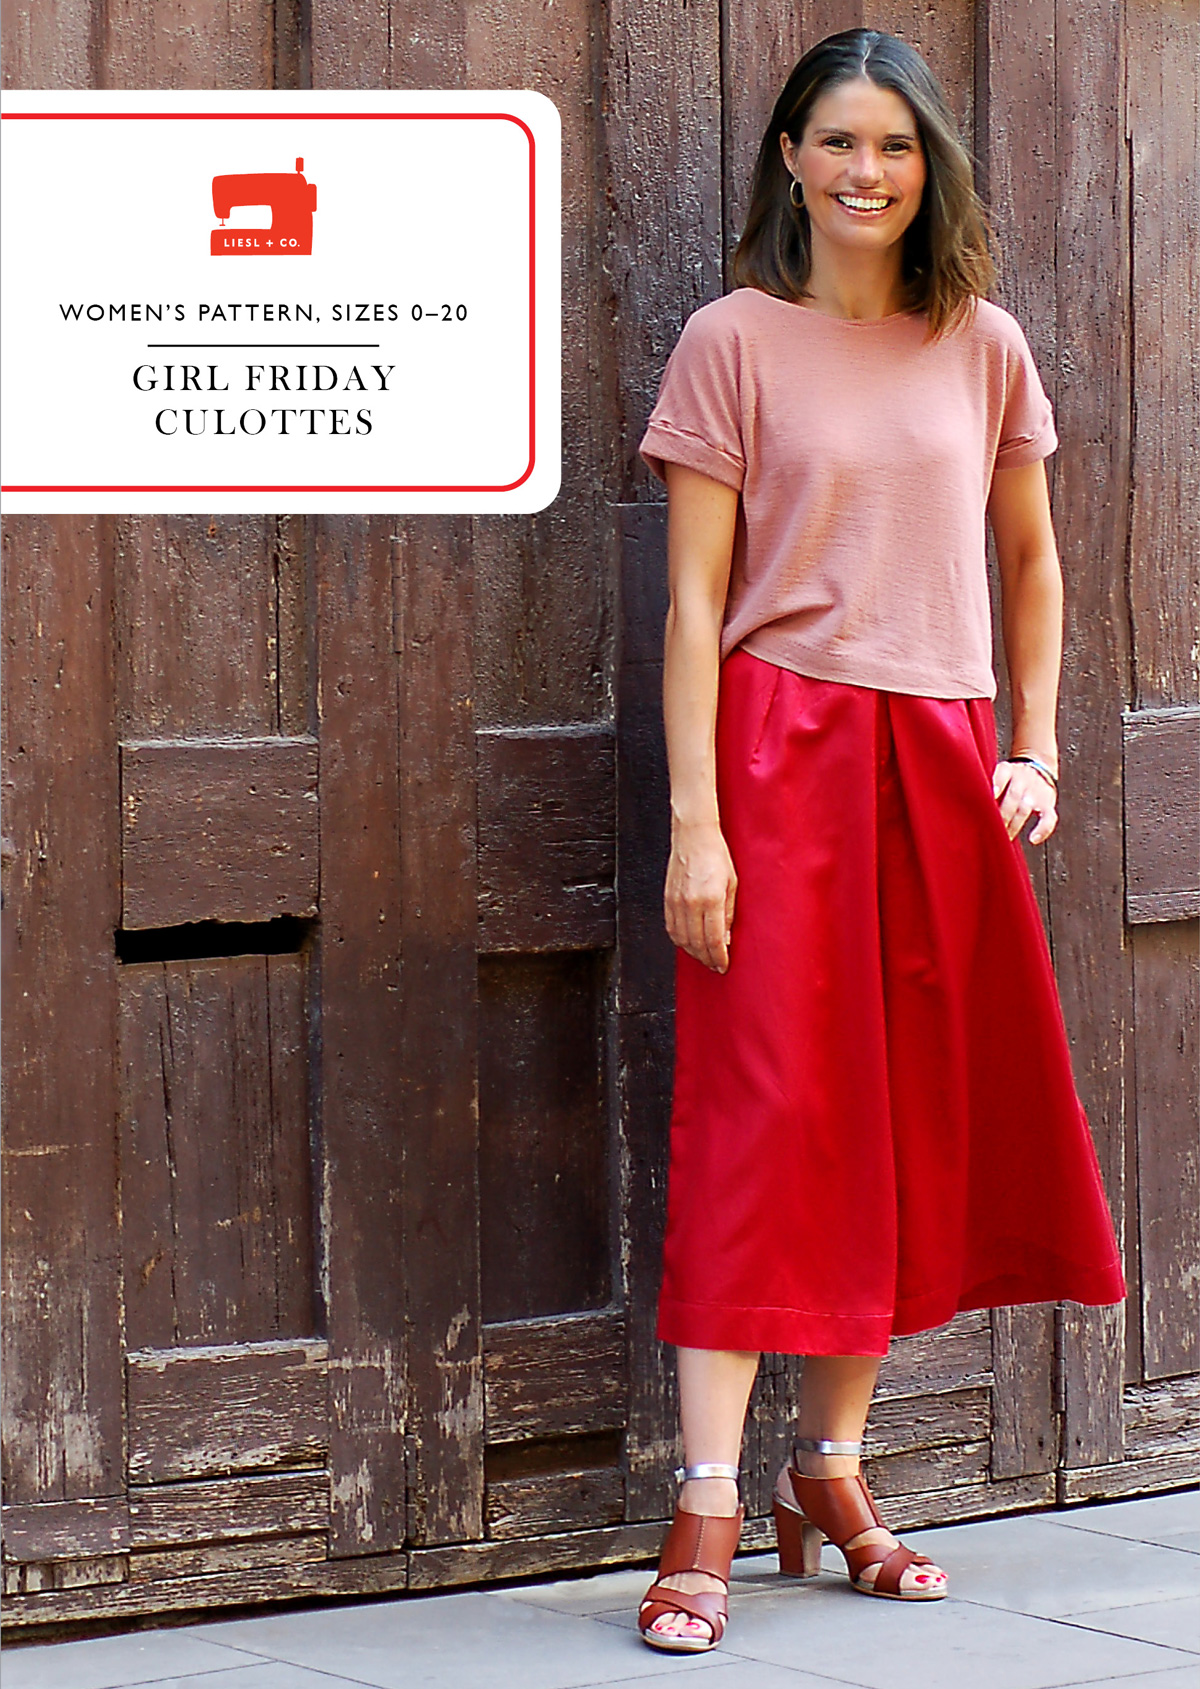 455521879716 Introducing the Liesl + Co Girl Friday Culottes